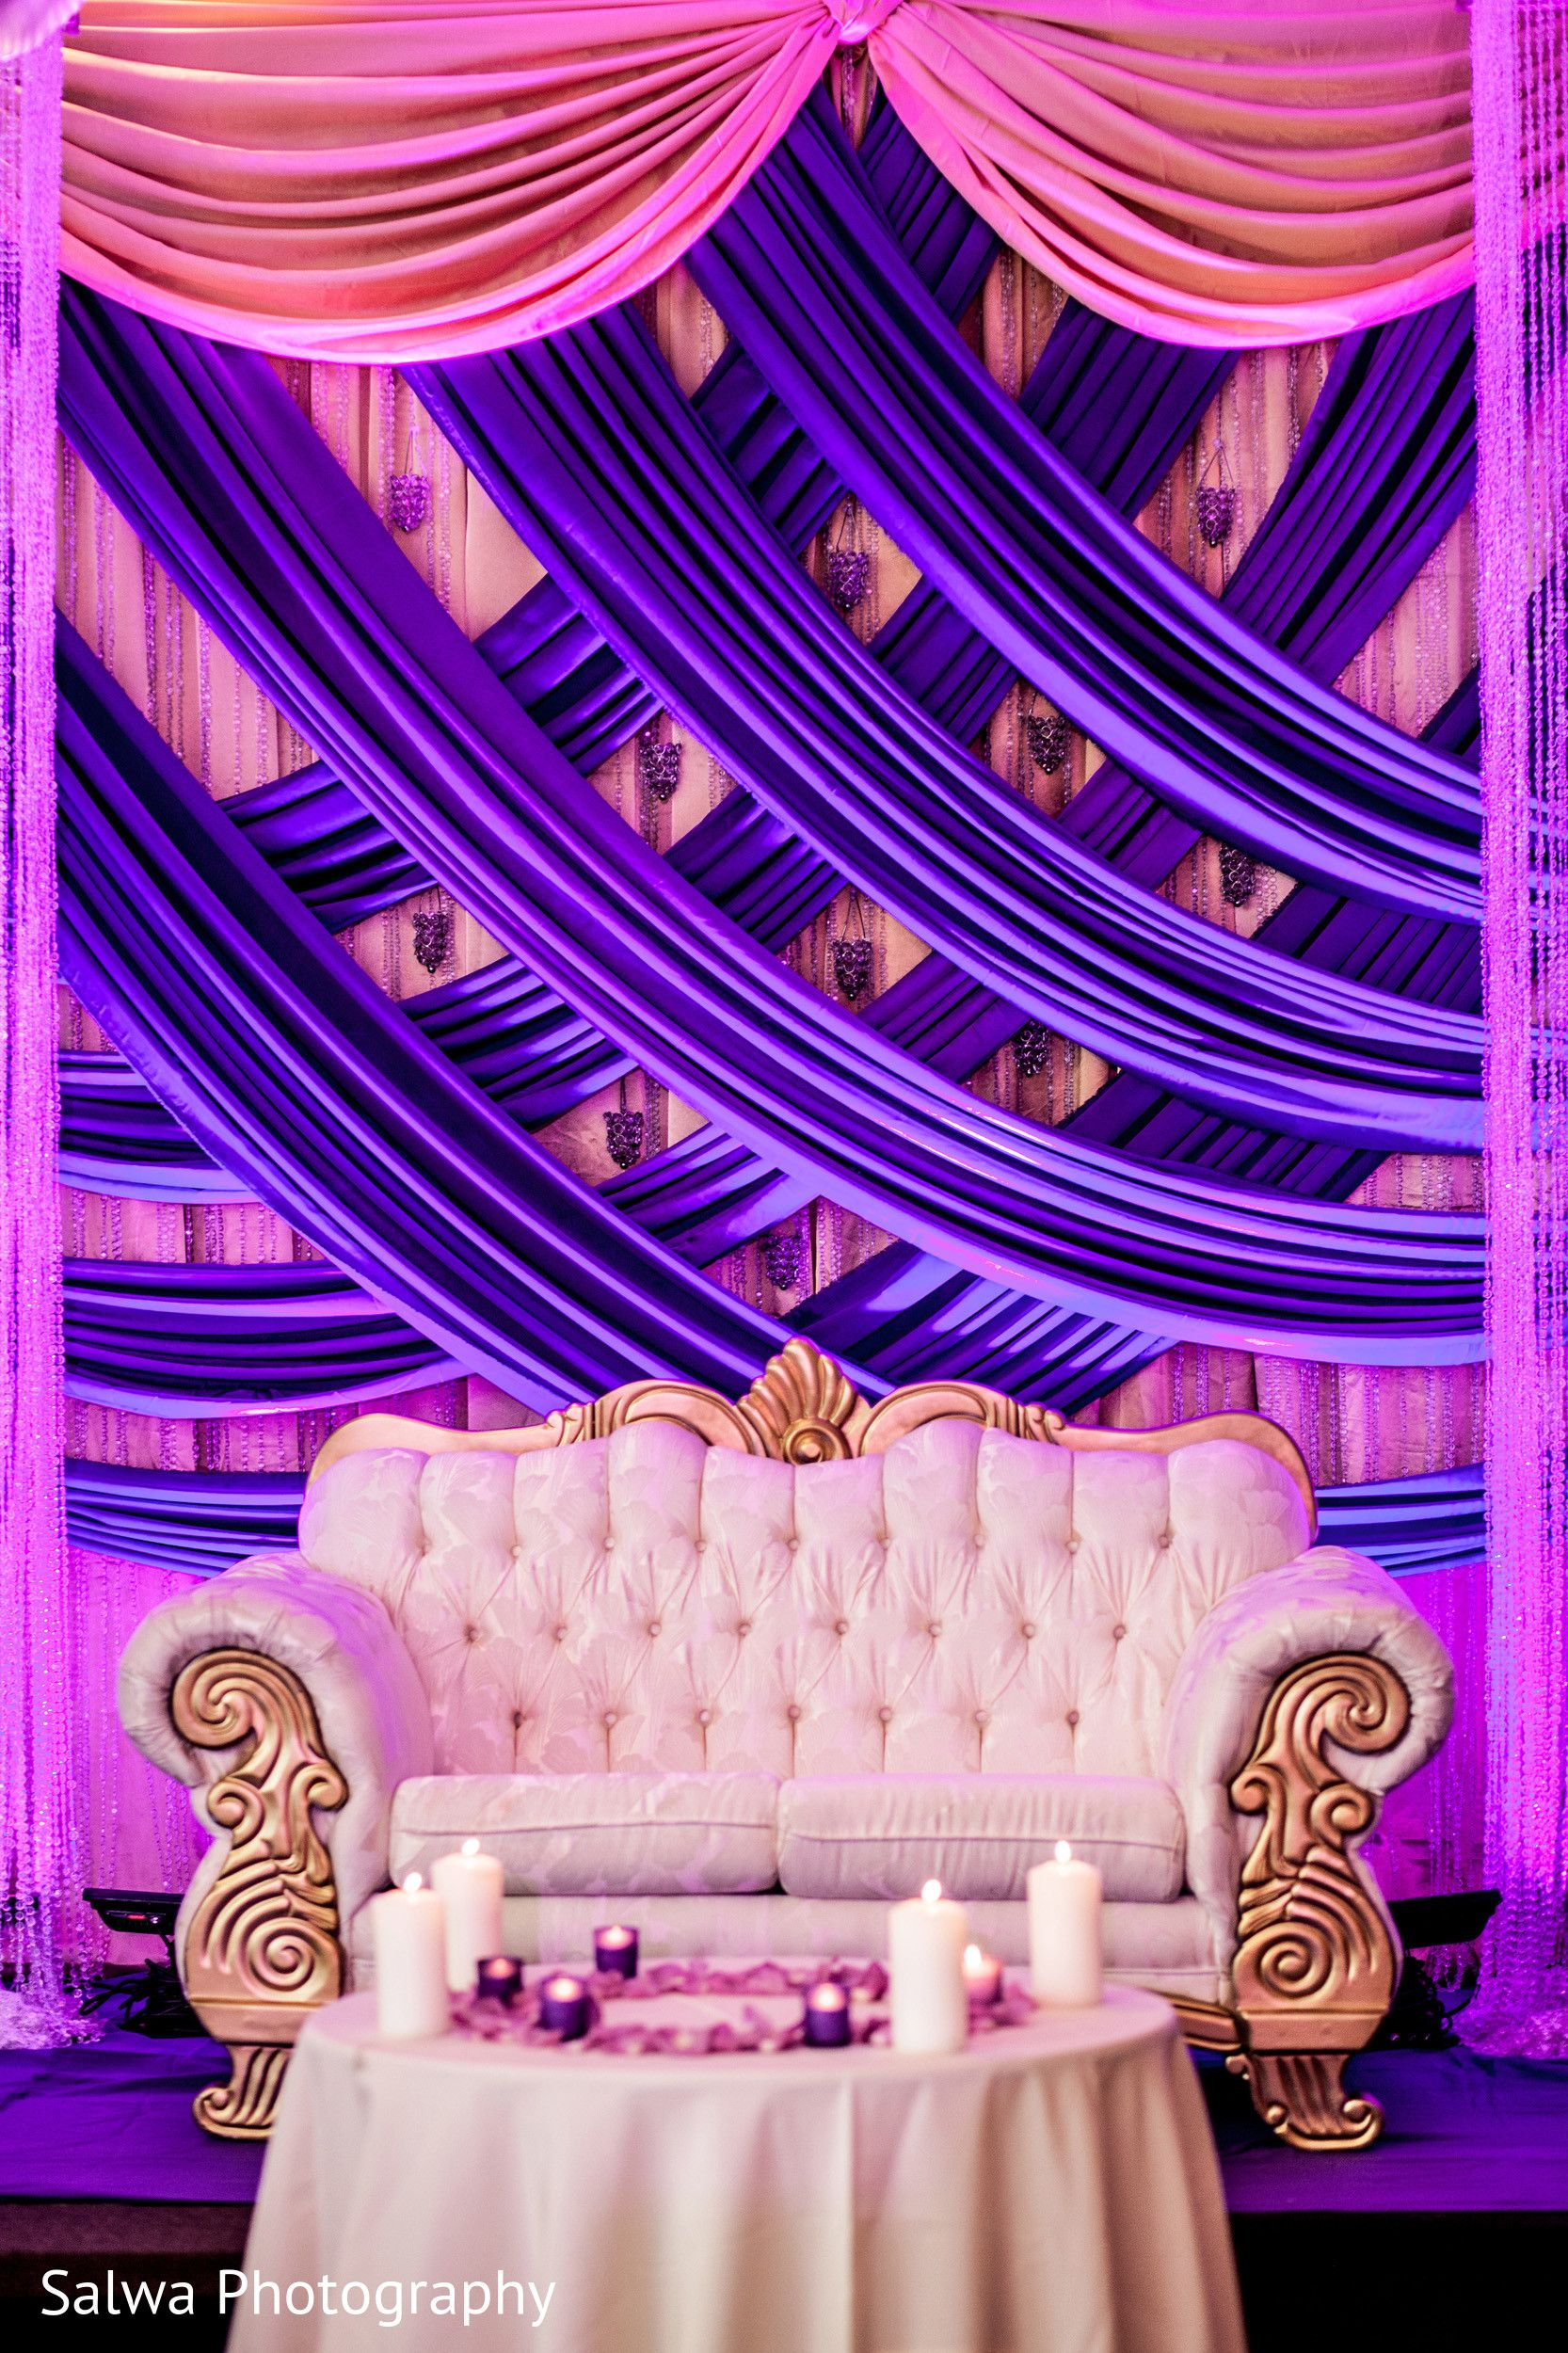 Pink and violet Curtains white sofa for a recpetion decor | Function Mania | #Trending: How to use hues of Ultraviolet for a chic wedding decor!